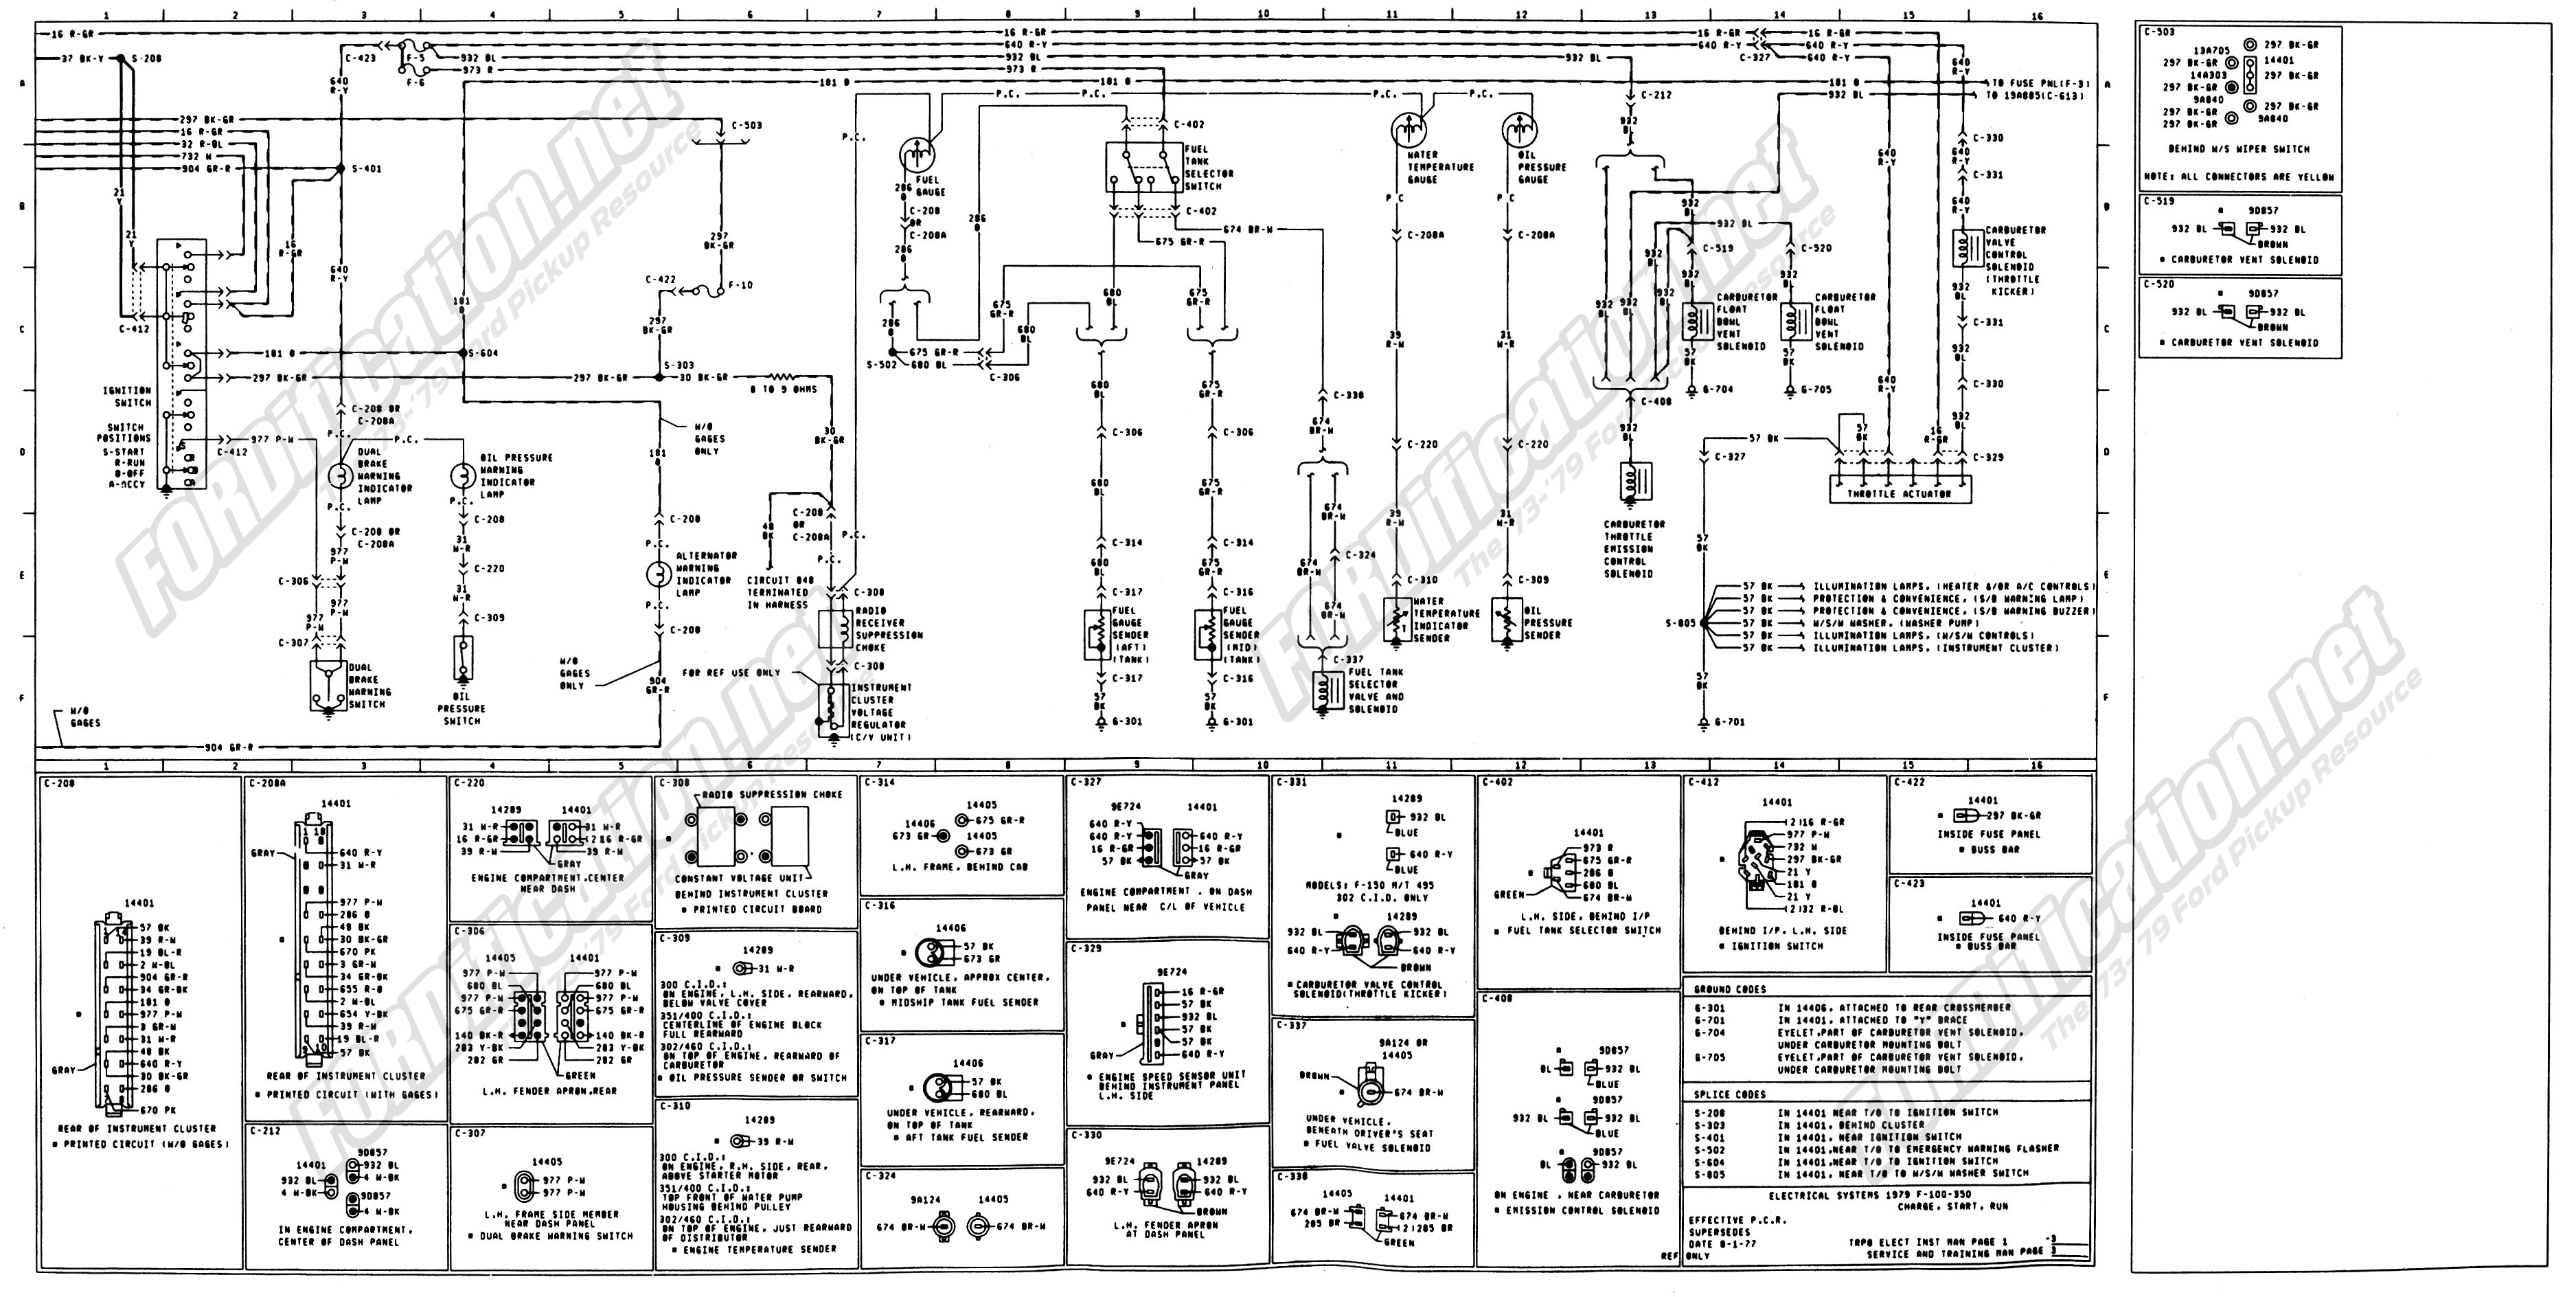 Ford F 350 Blower Motor Wiring Schematic Not Lossing Diagram 1977 Chevy V8 Ignition 1973 1979 Truck Diagrams Schematics Fordification Net Rh Electrical 1999